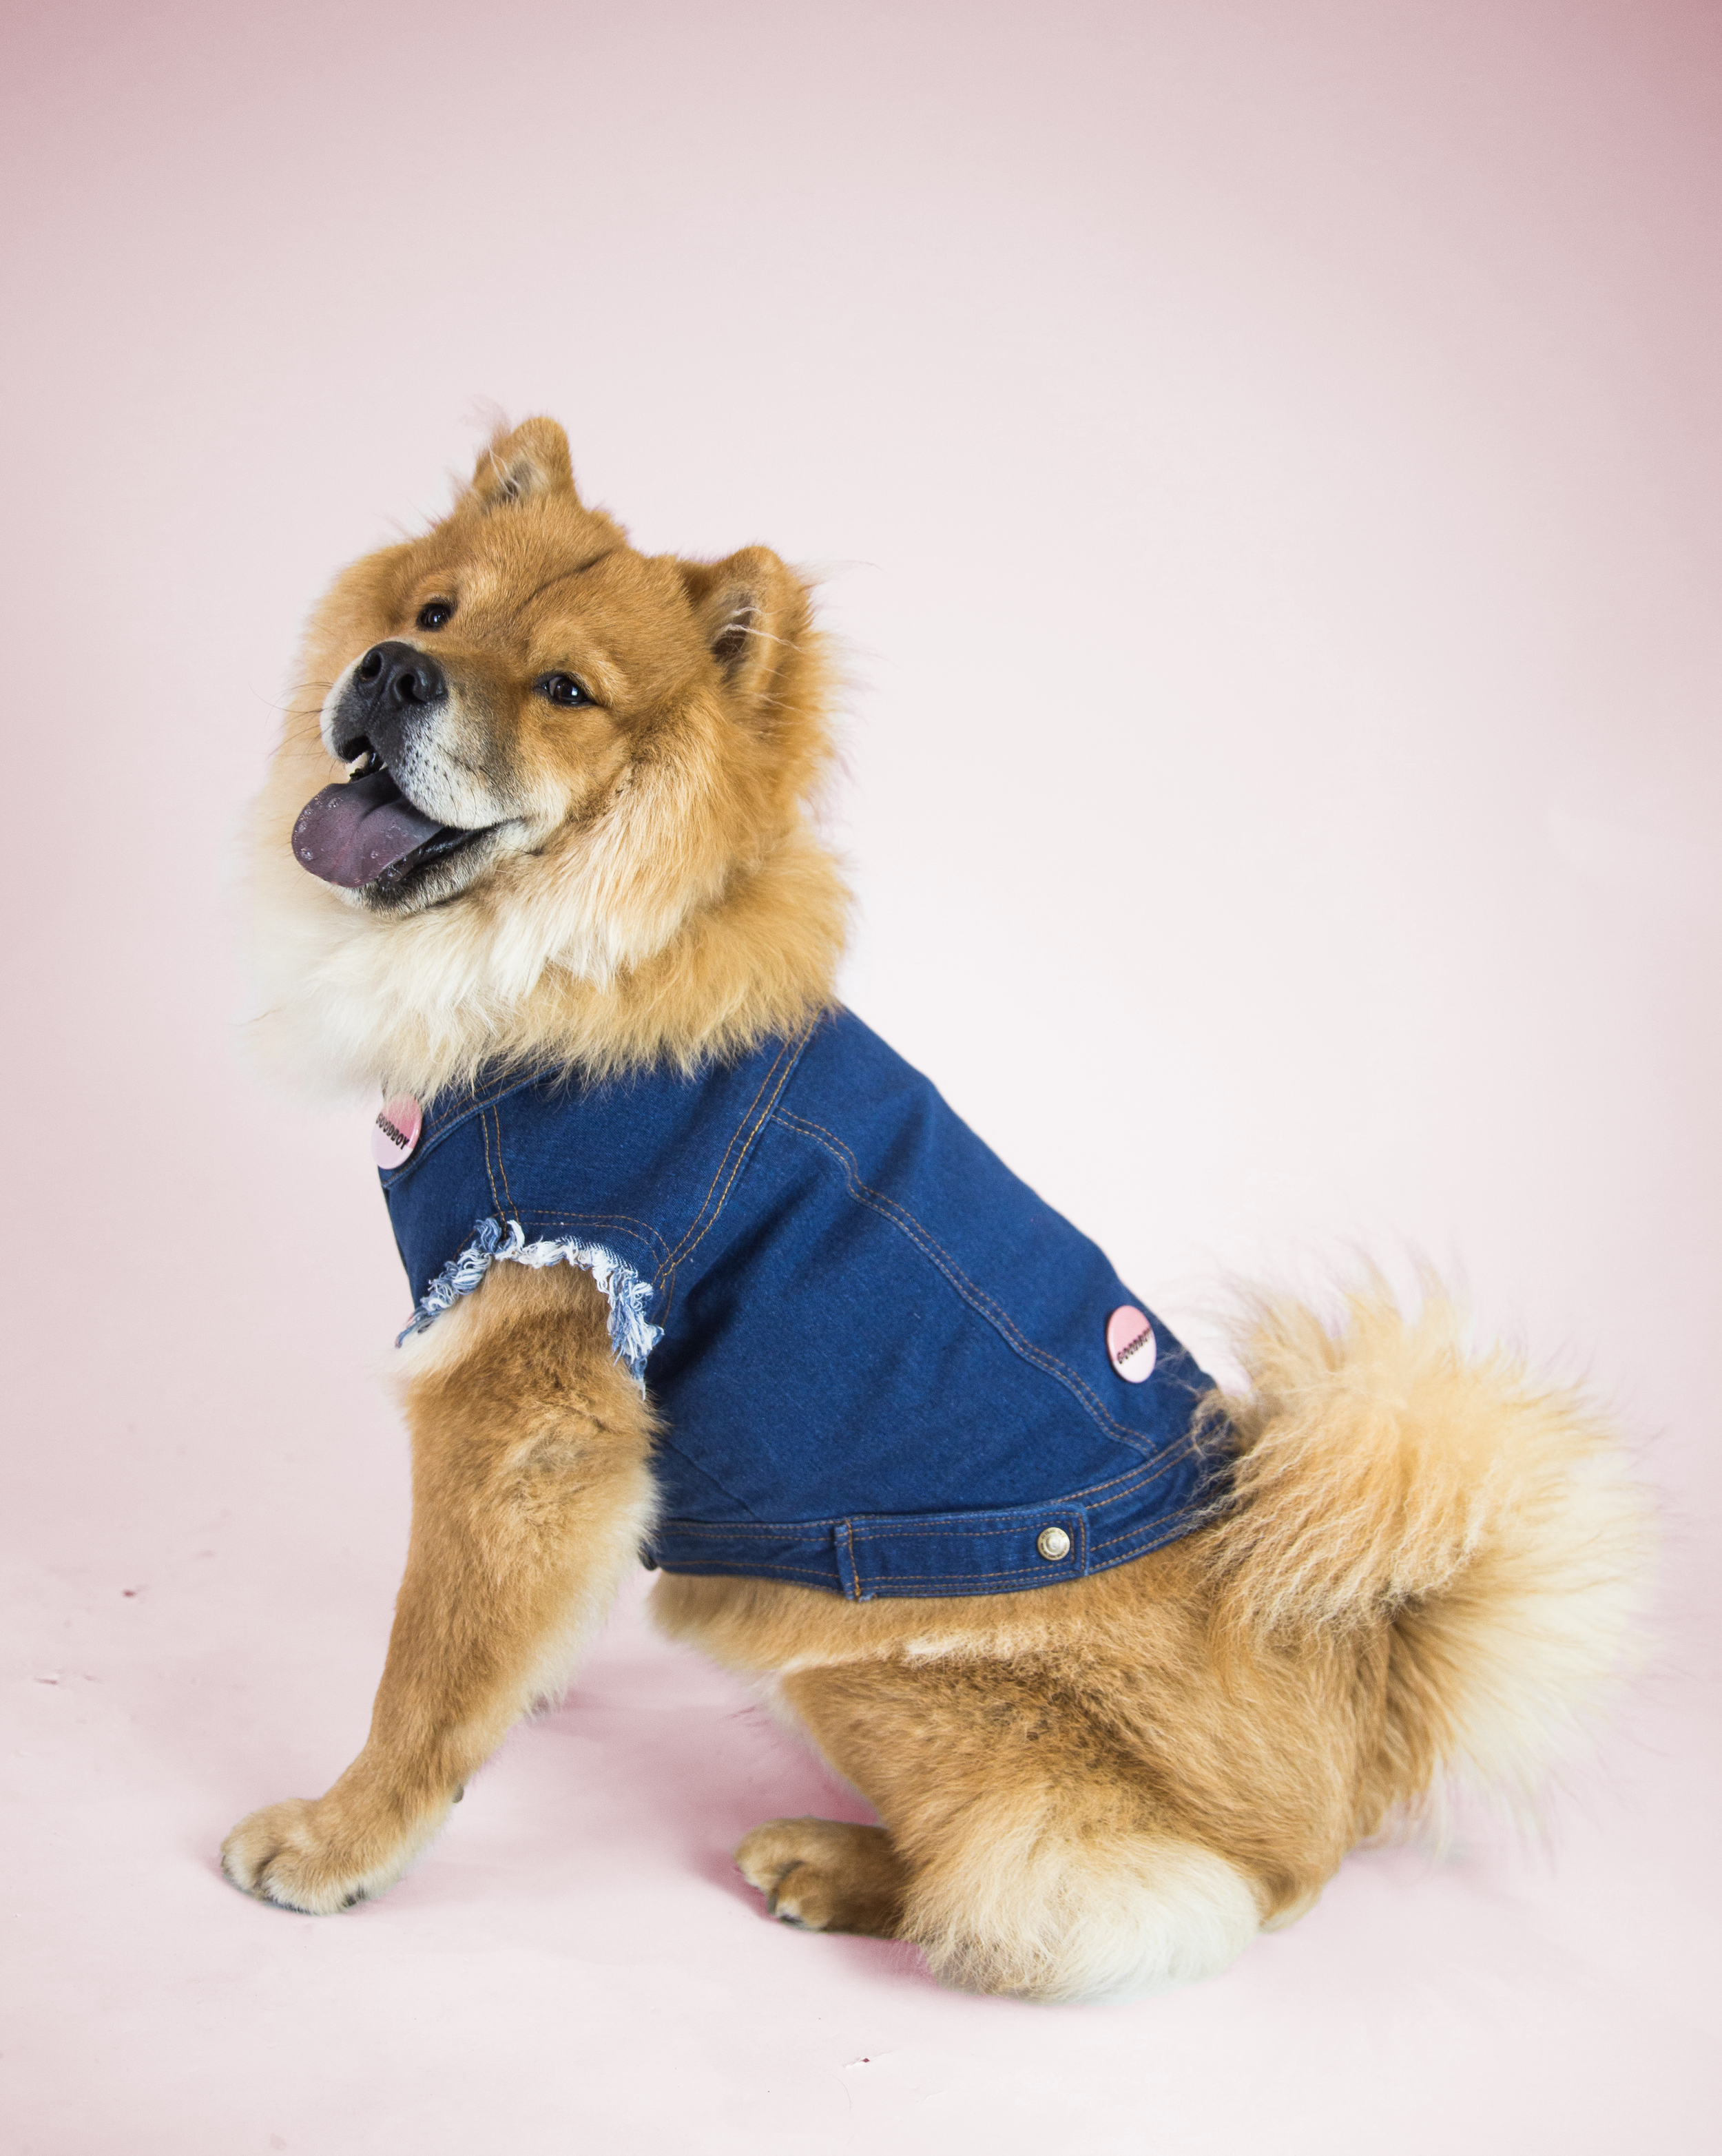 Favourite Goodboy Swag - Tofu loves to use clothes to accentuate his beautiful lion's mane.  His favourite outfit to rock is the Pethaus Raw Denim Vest.  He feels totally bad-ass in it.  We couldn't agree more.